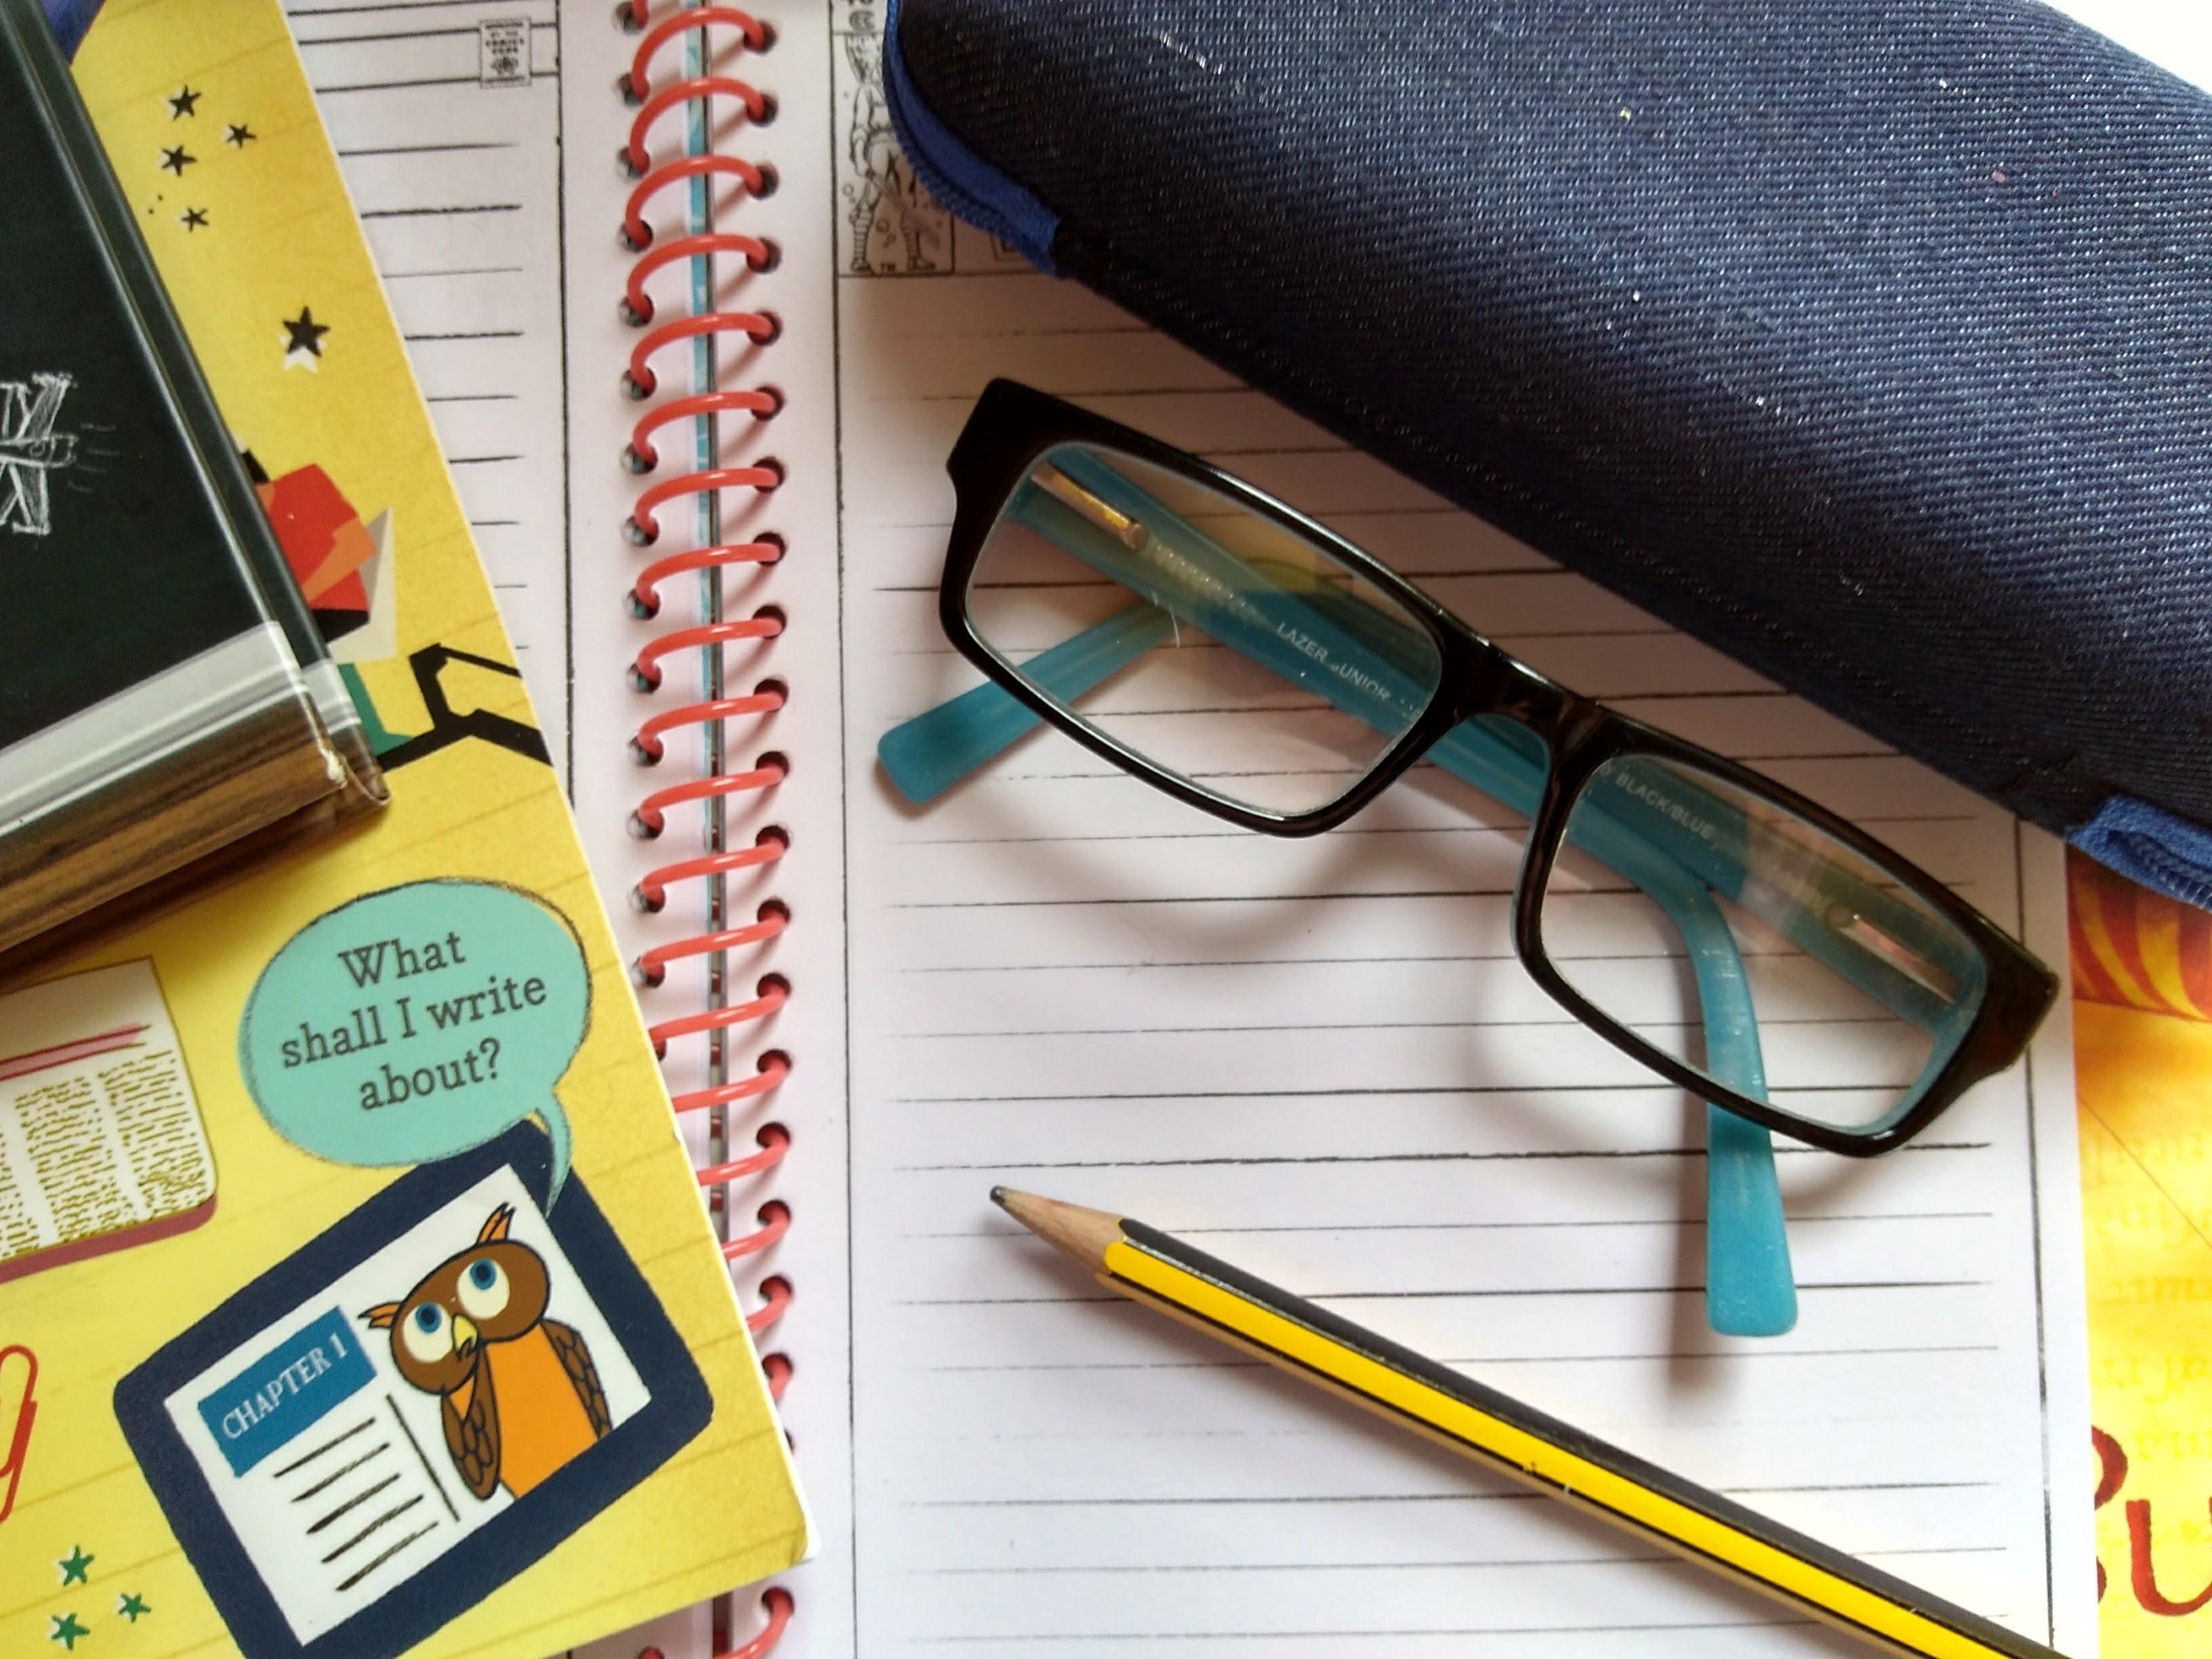 childrens-glasses-for-reading-resting-on-notebook-with-pencil-books-to-side